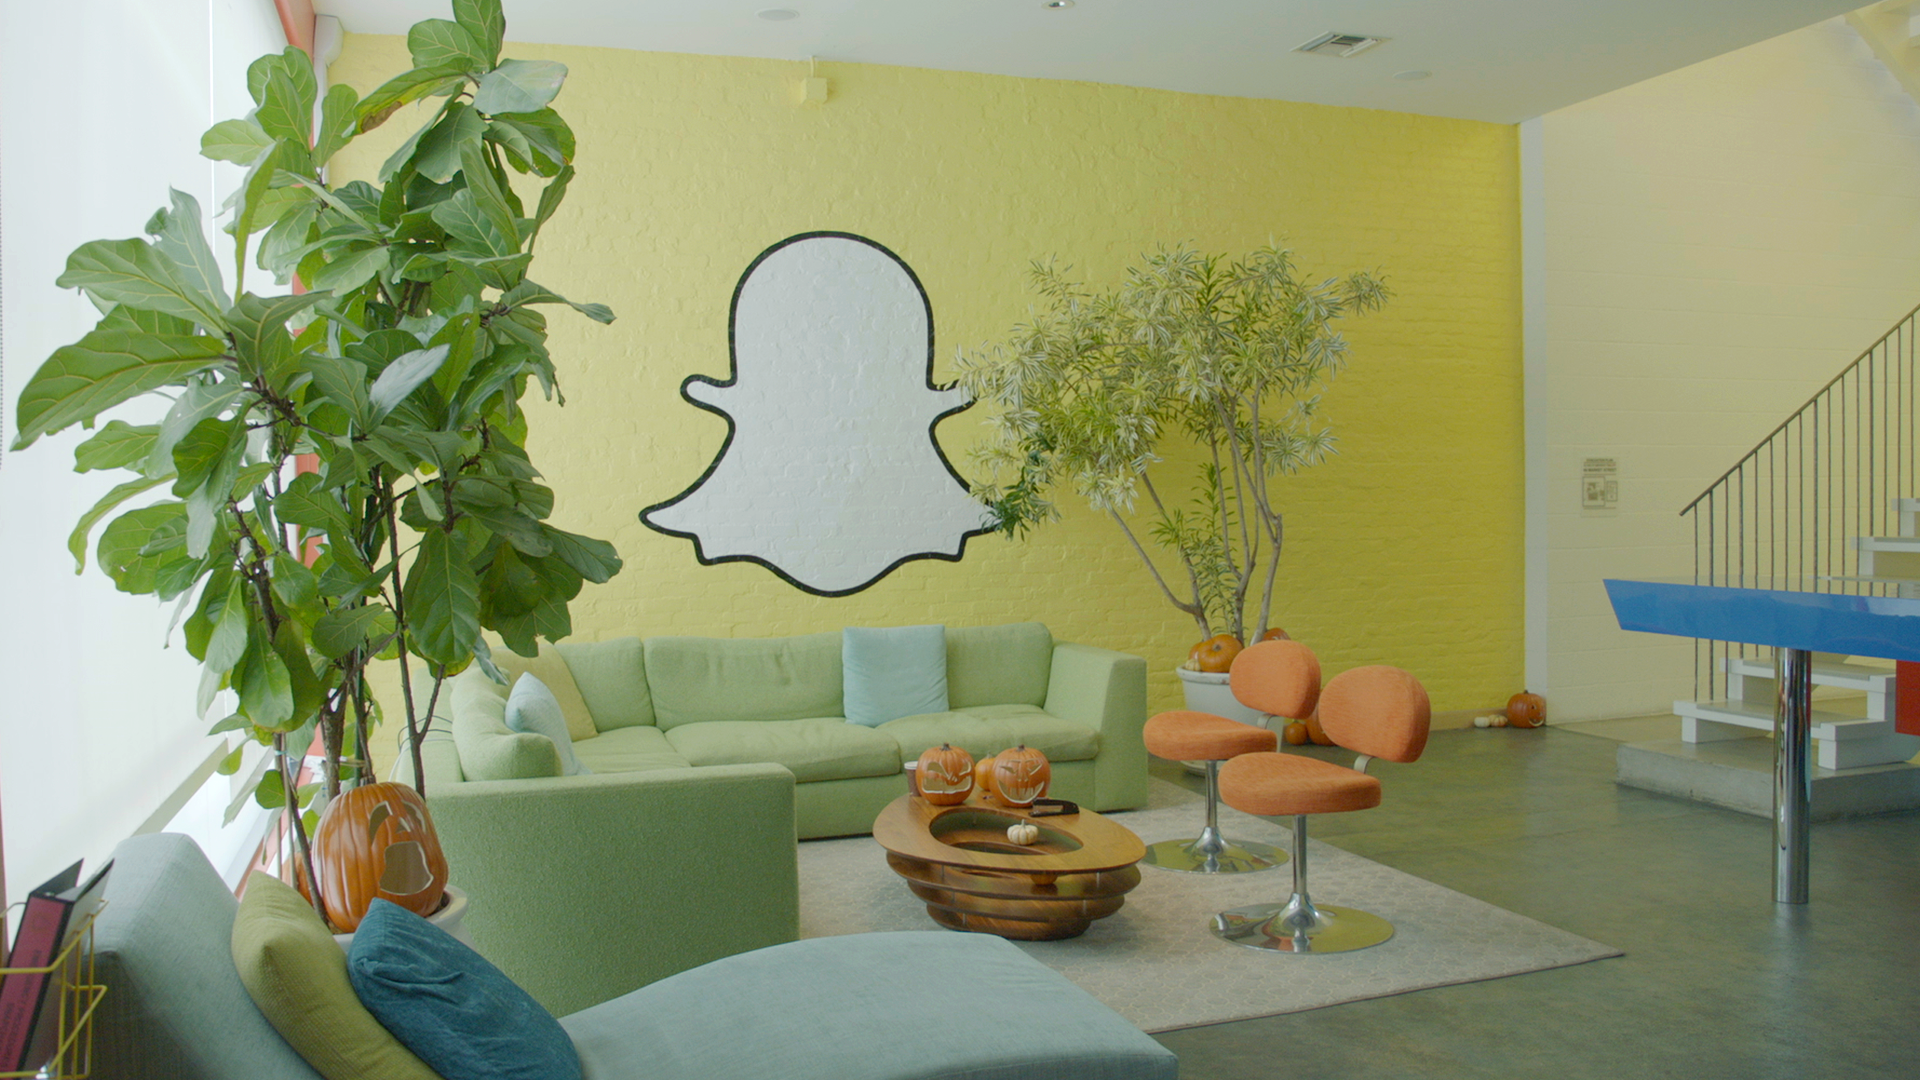 Das Snapchat -Headquarter in Los Angeles.